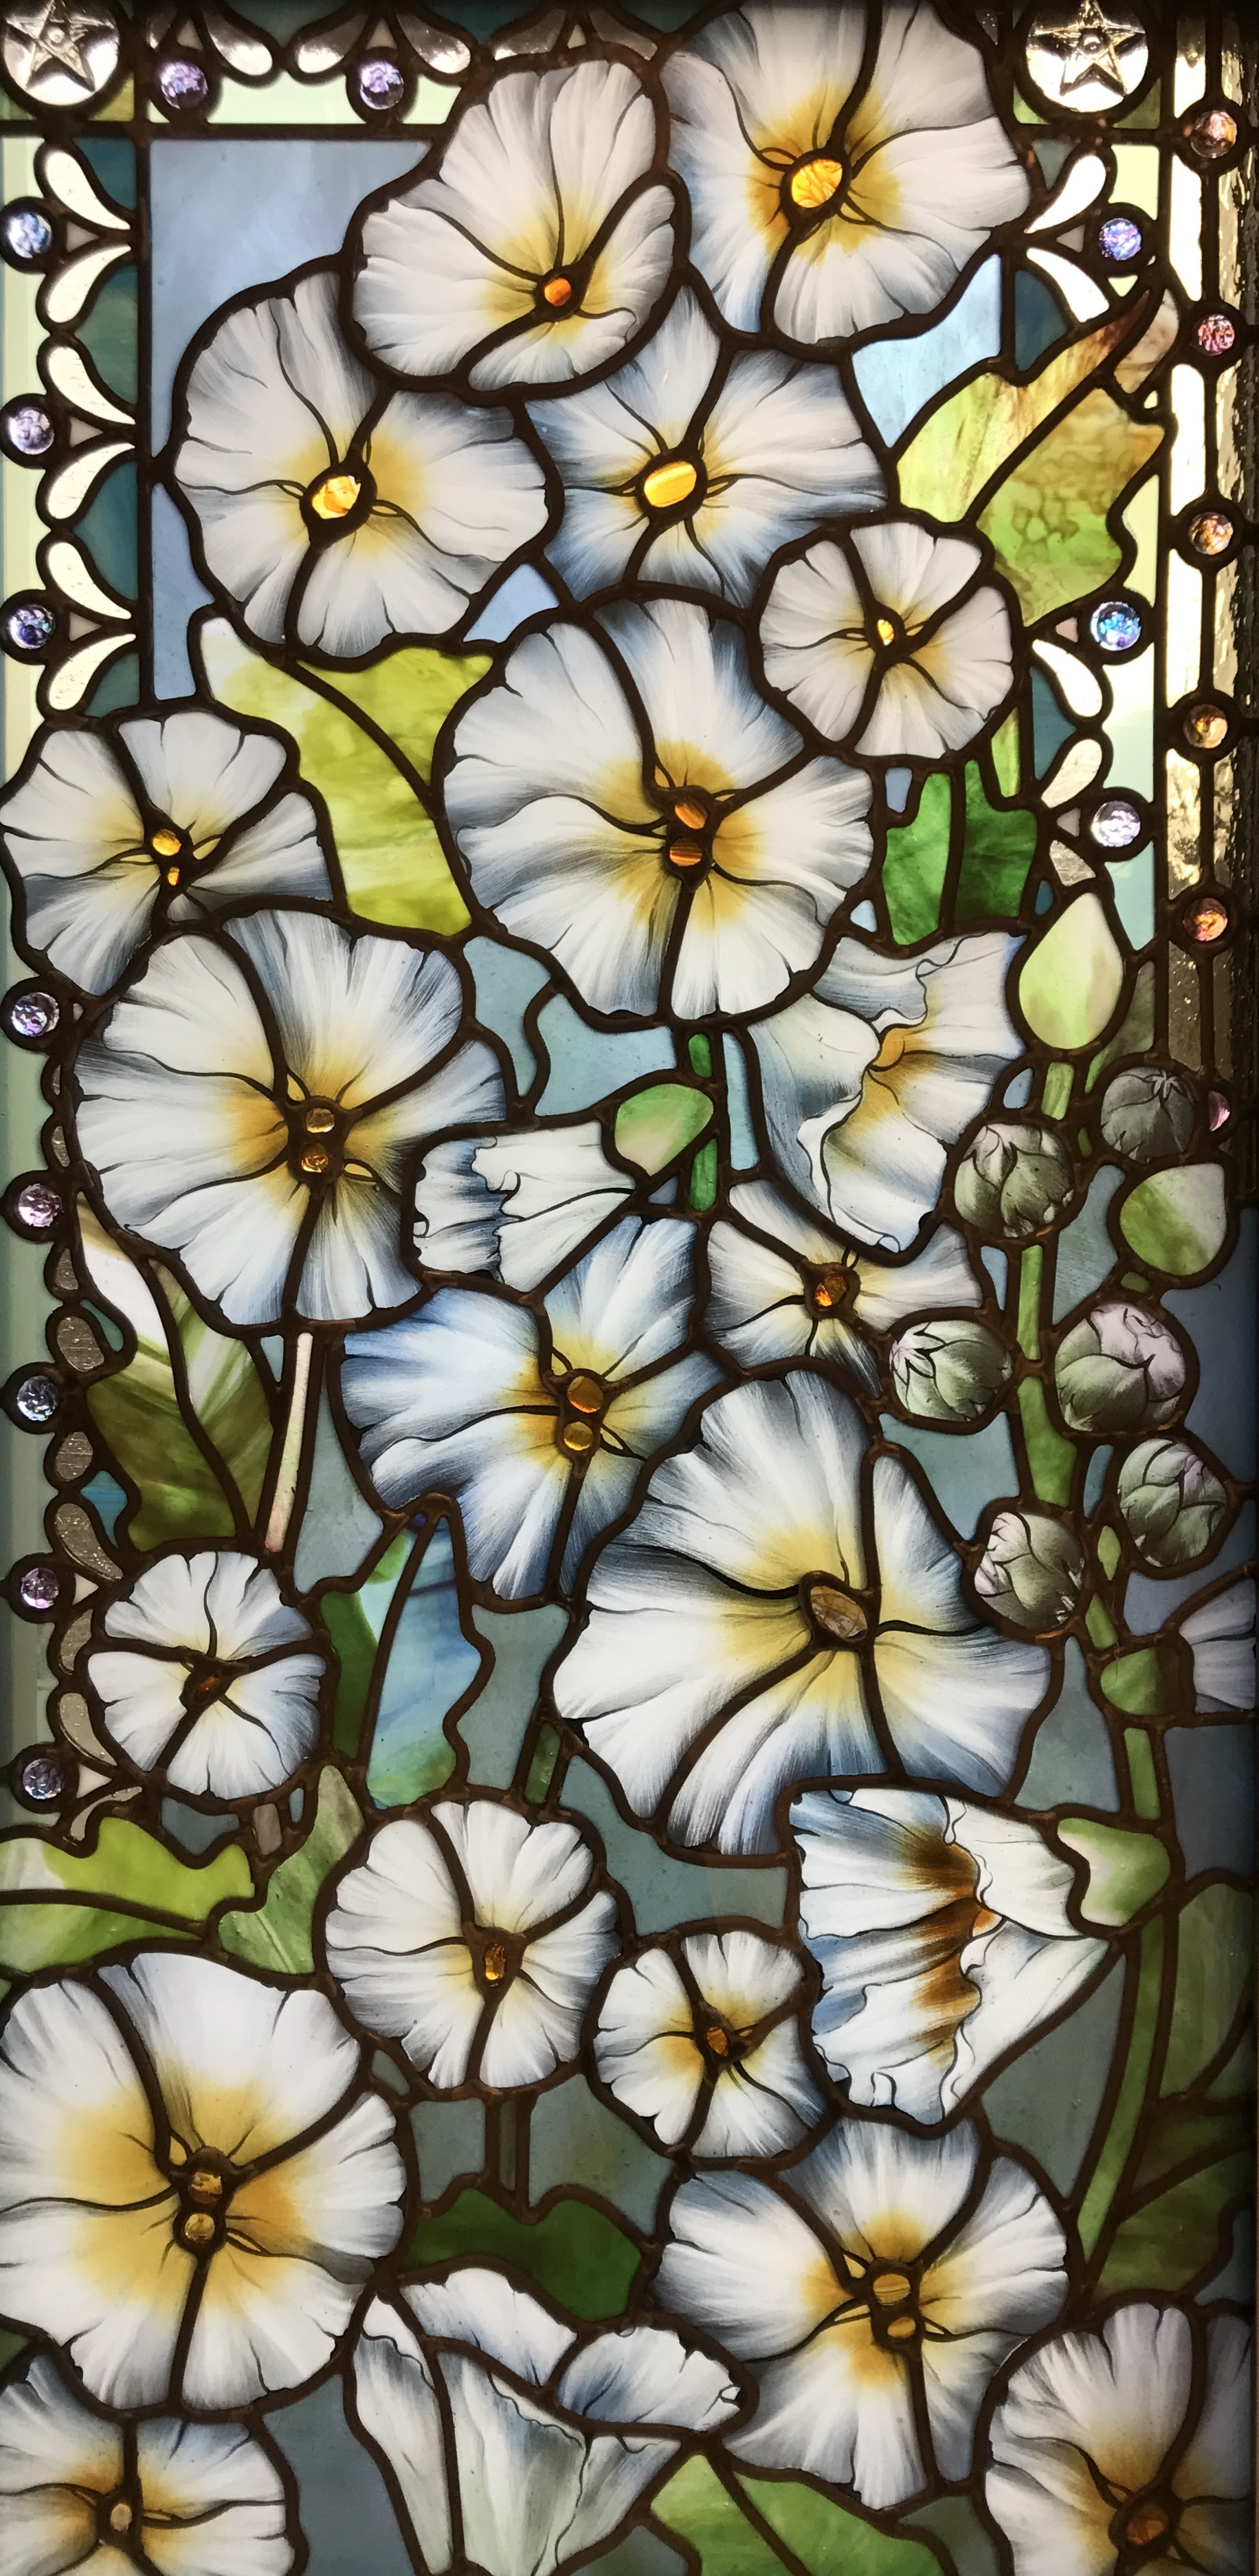 A window in the Celestial room Paris France. The celestial room windows feature white hollyhocks and custom made glass jewels from Holdman Studios.